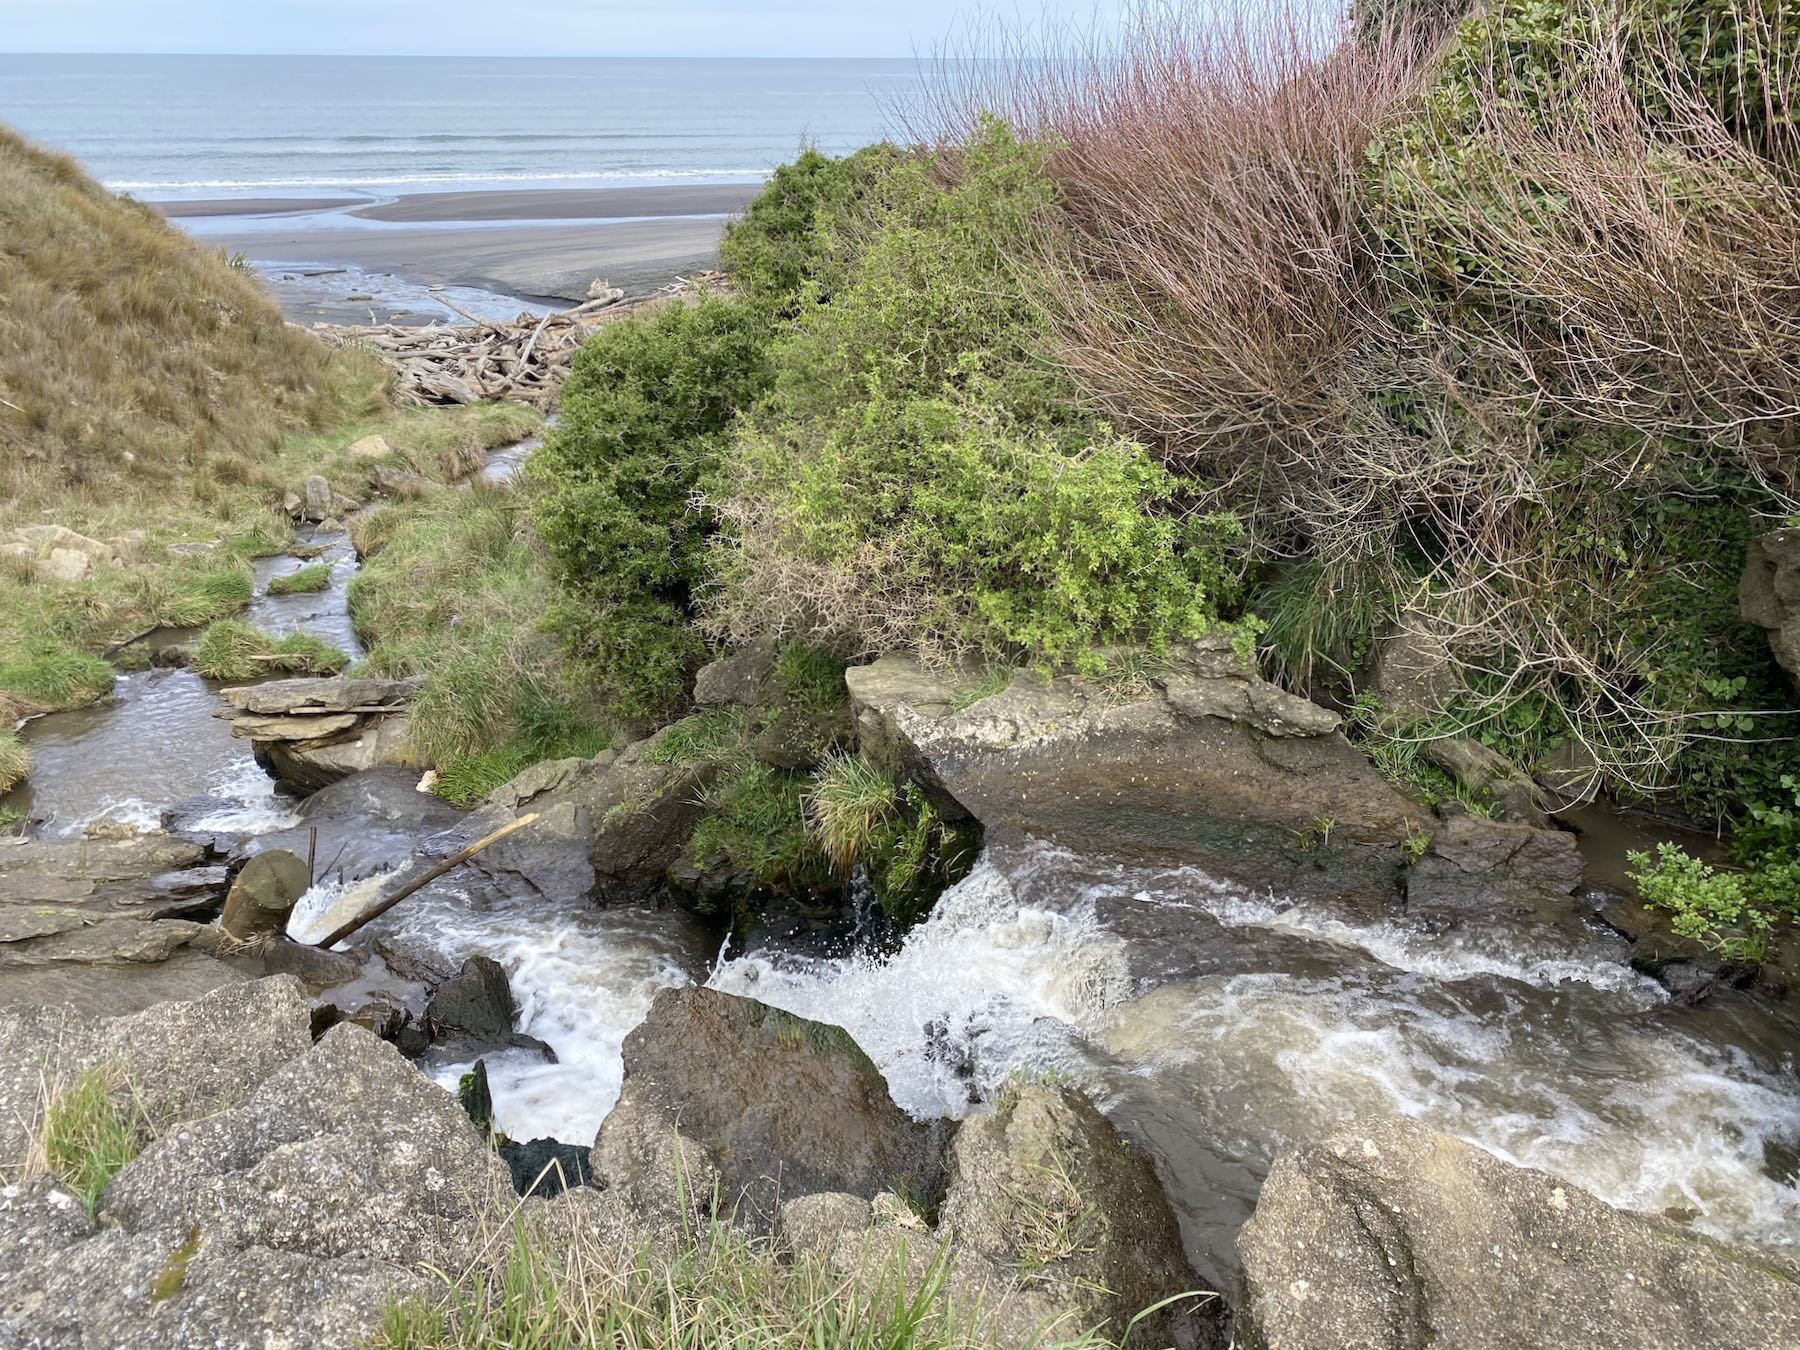 The lower waterfall, about 1 metre high, near beach level and flowing out to sea.